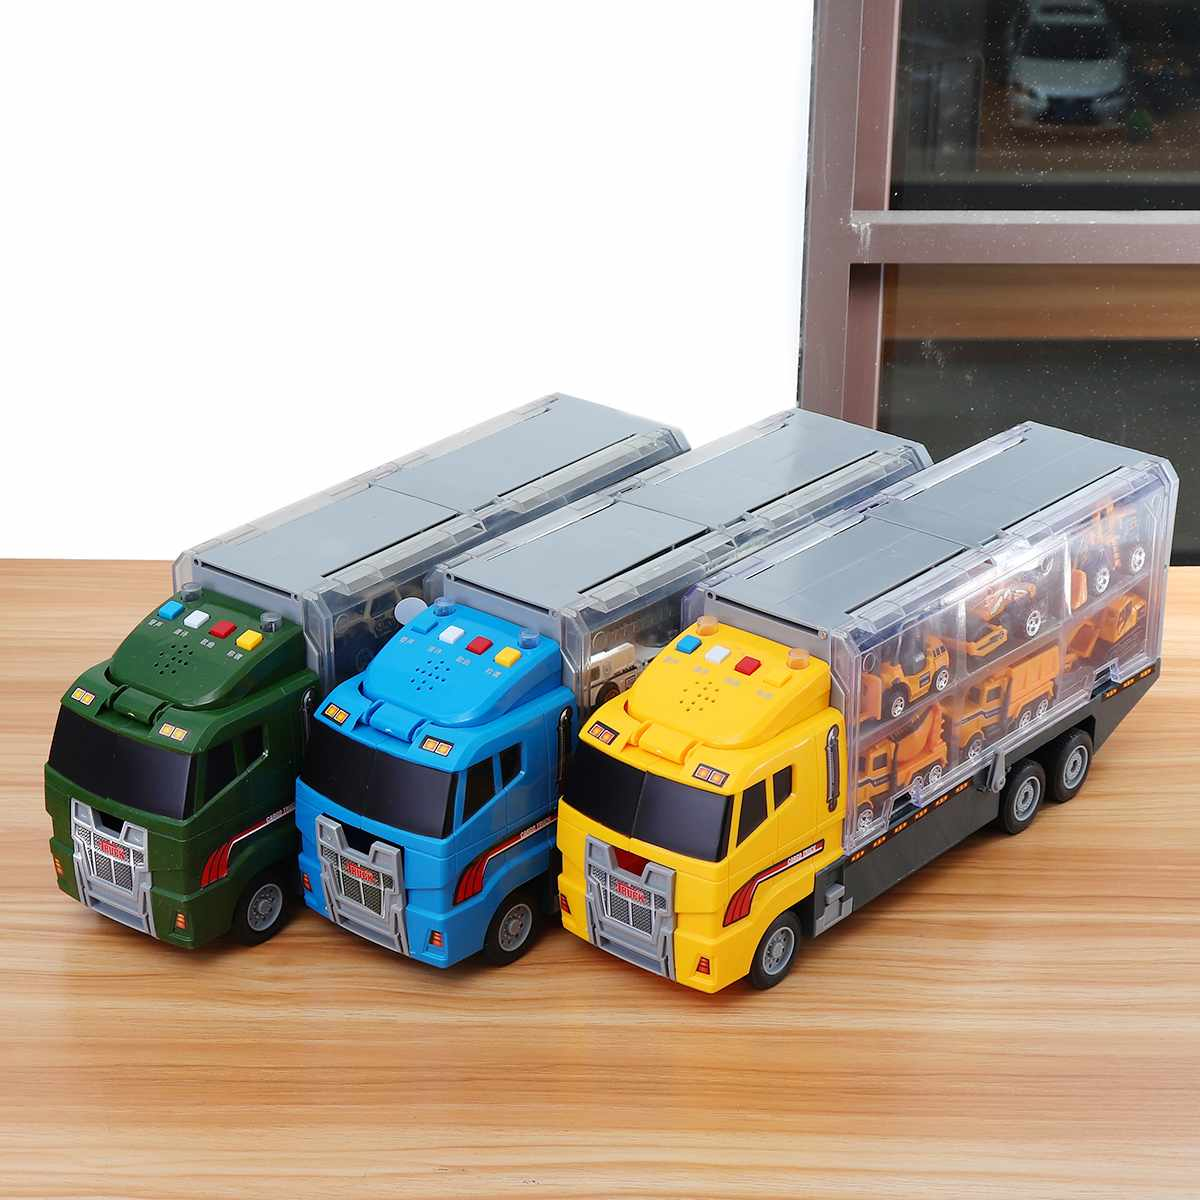 Kids Cars Toy Large Construction Truck Excavator Digger Demolition Vehicle Gifts